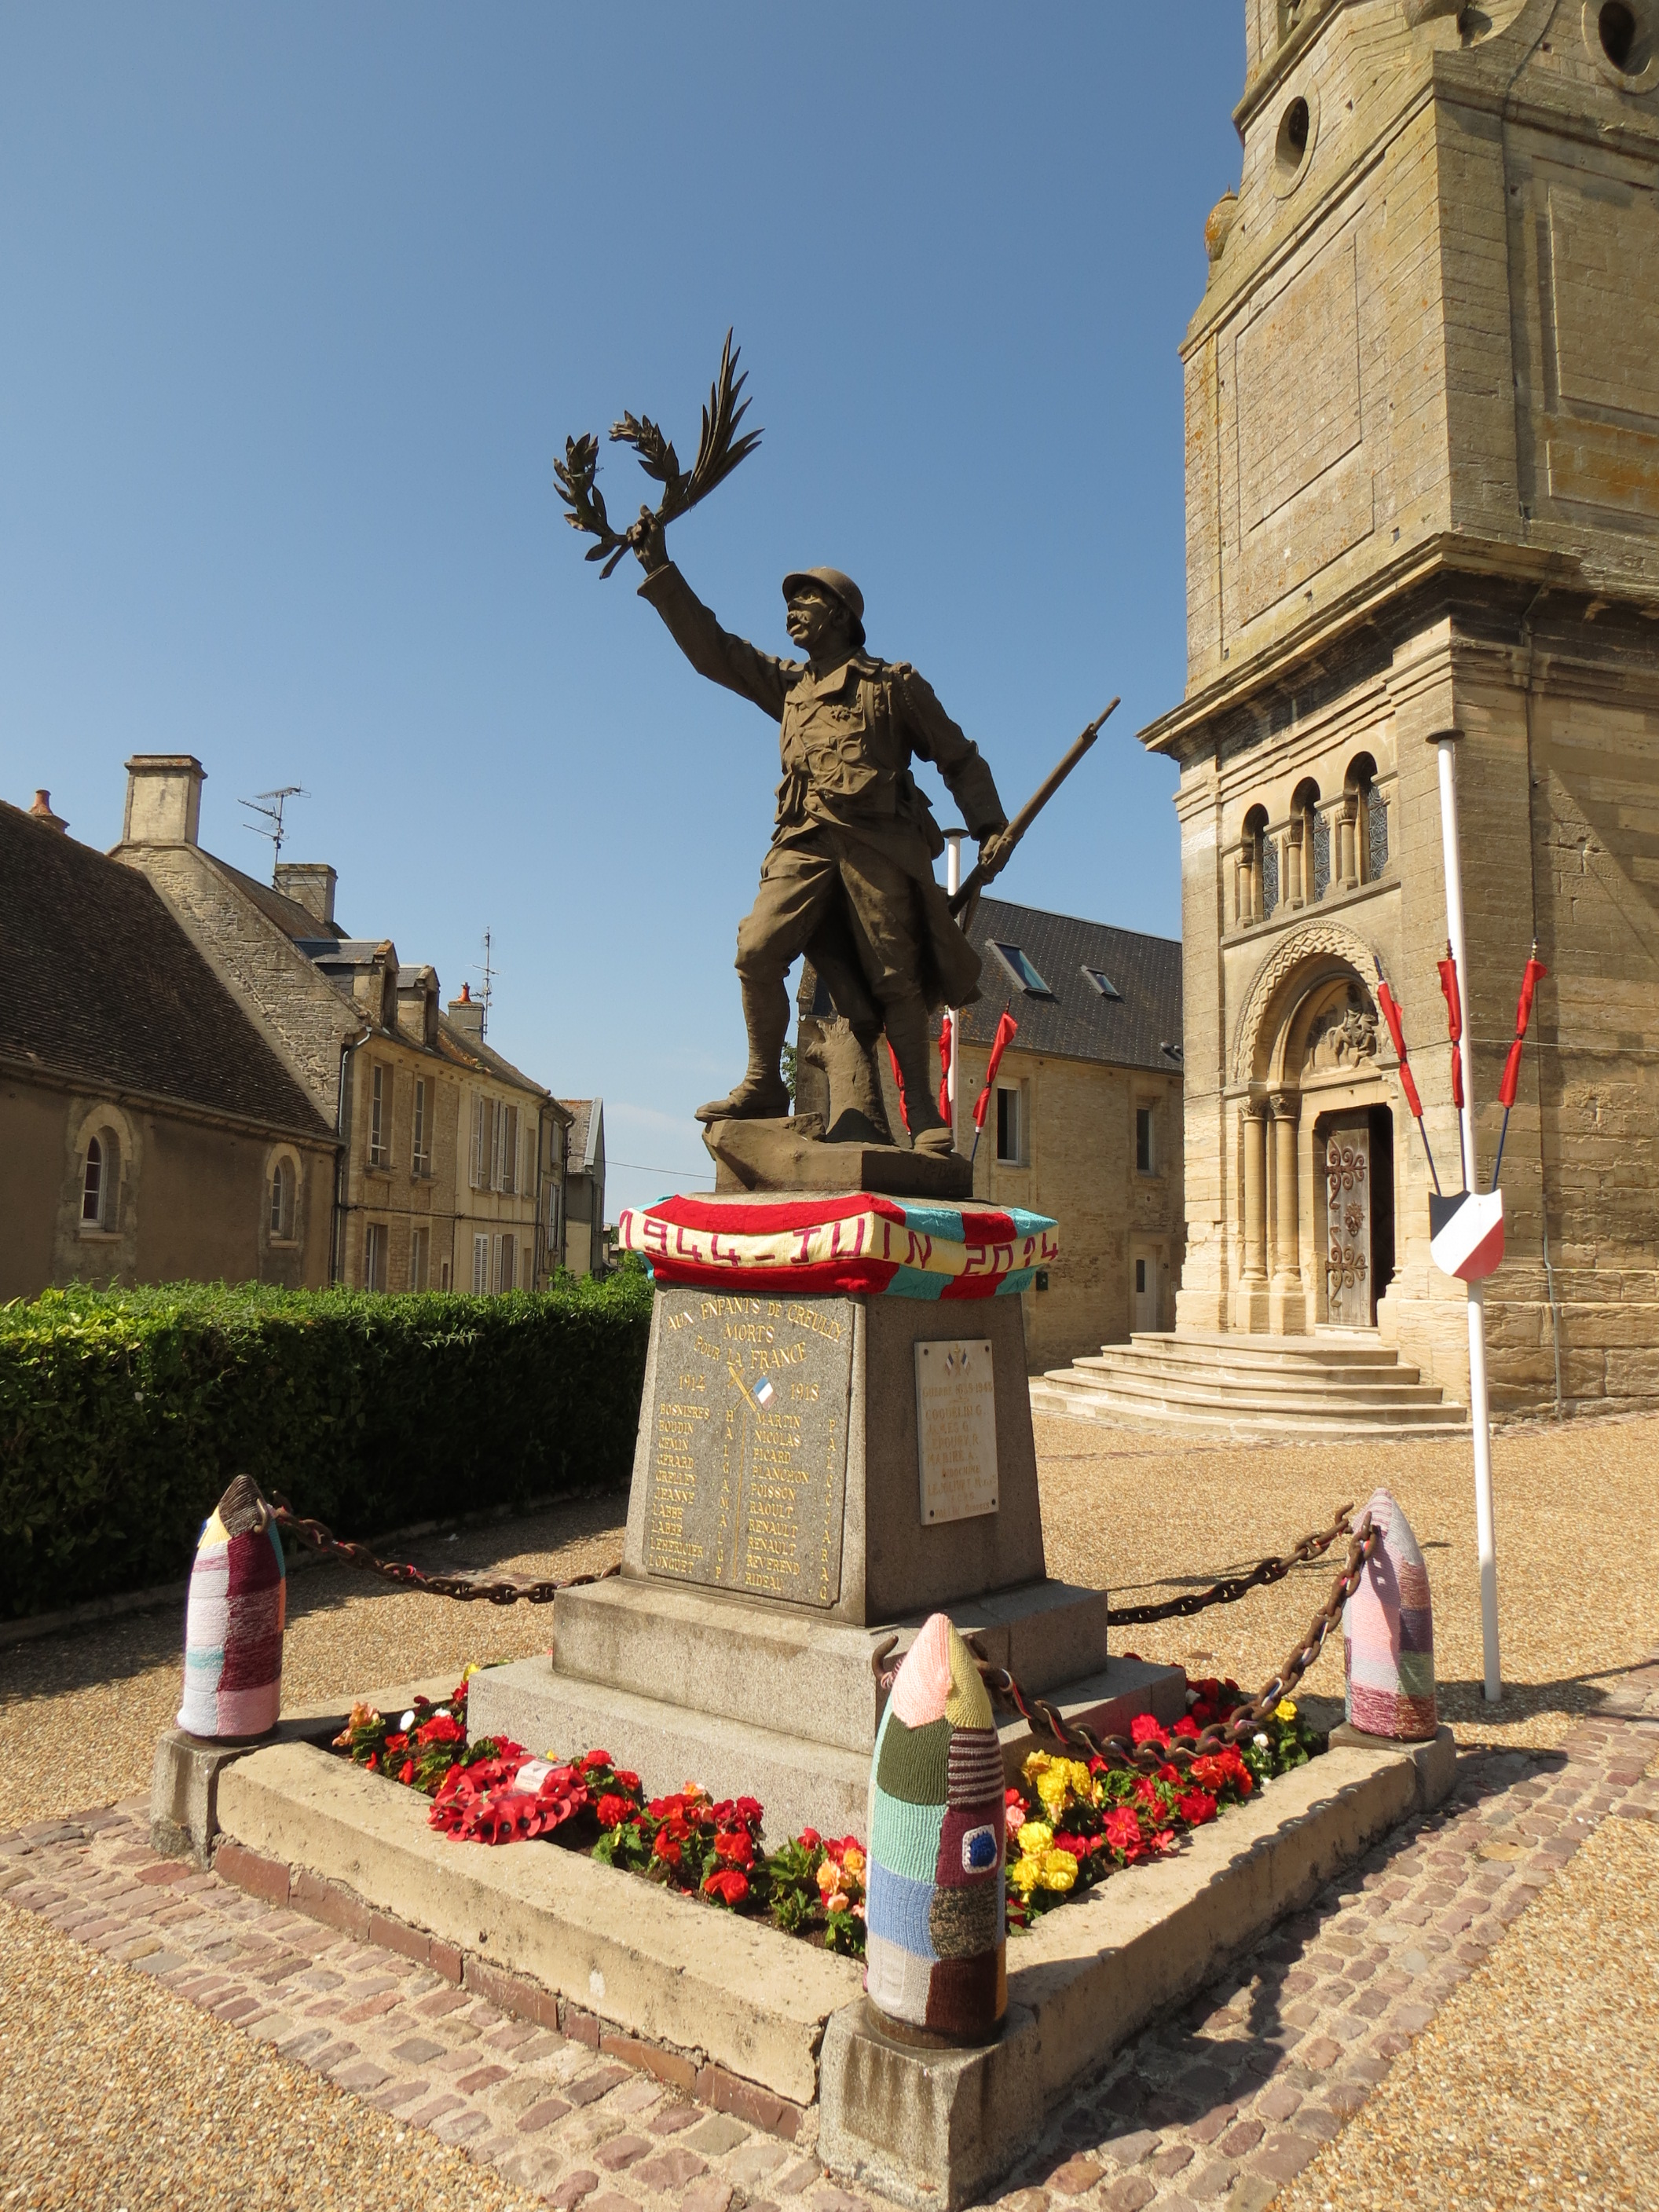 In front of the church there is a WWI memorial